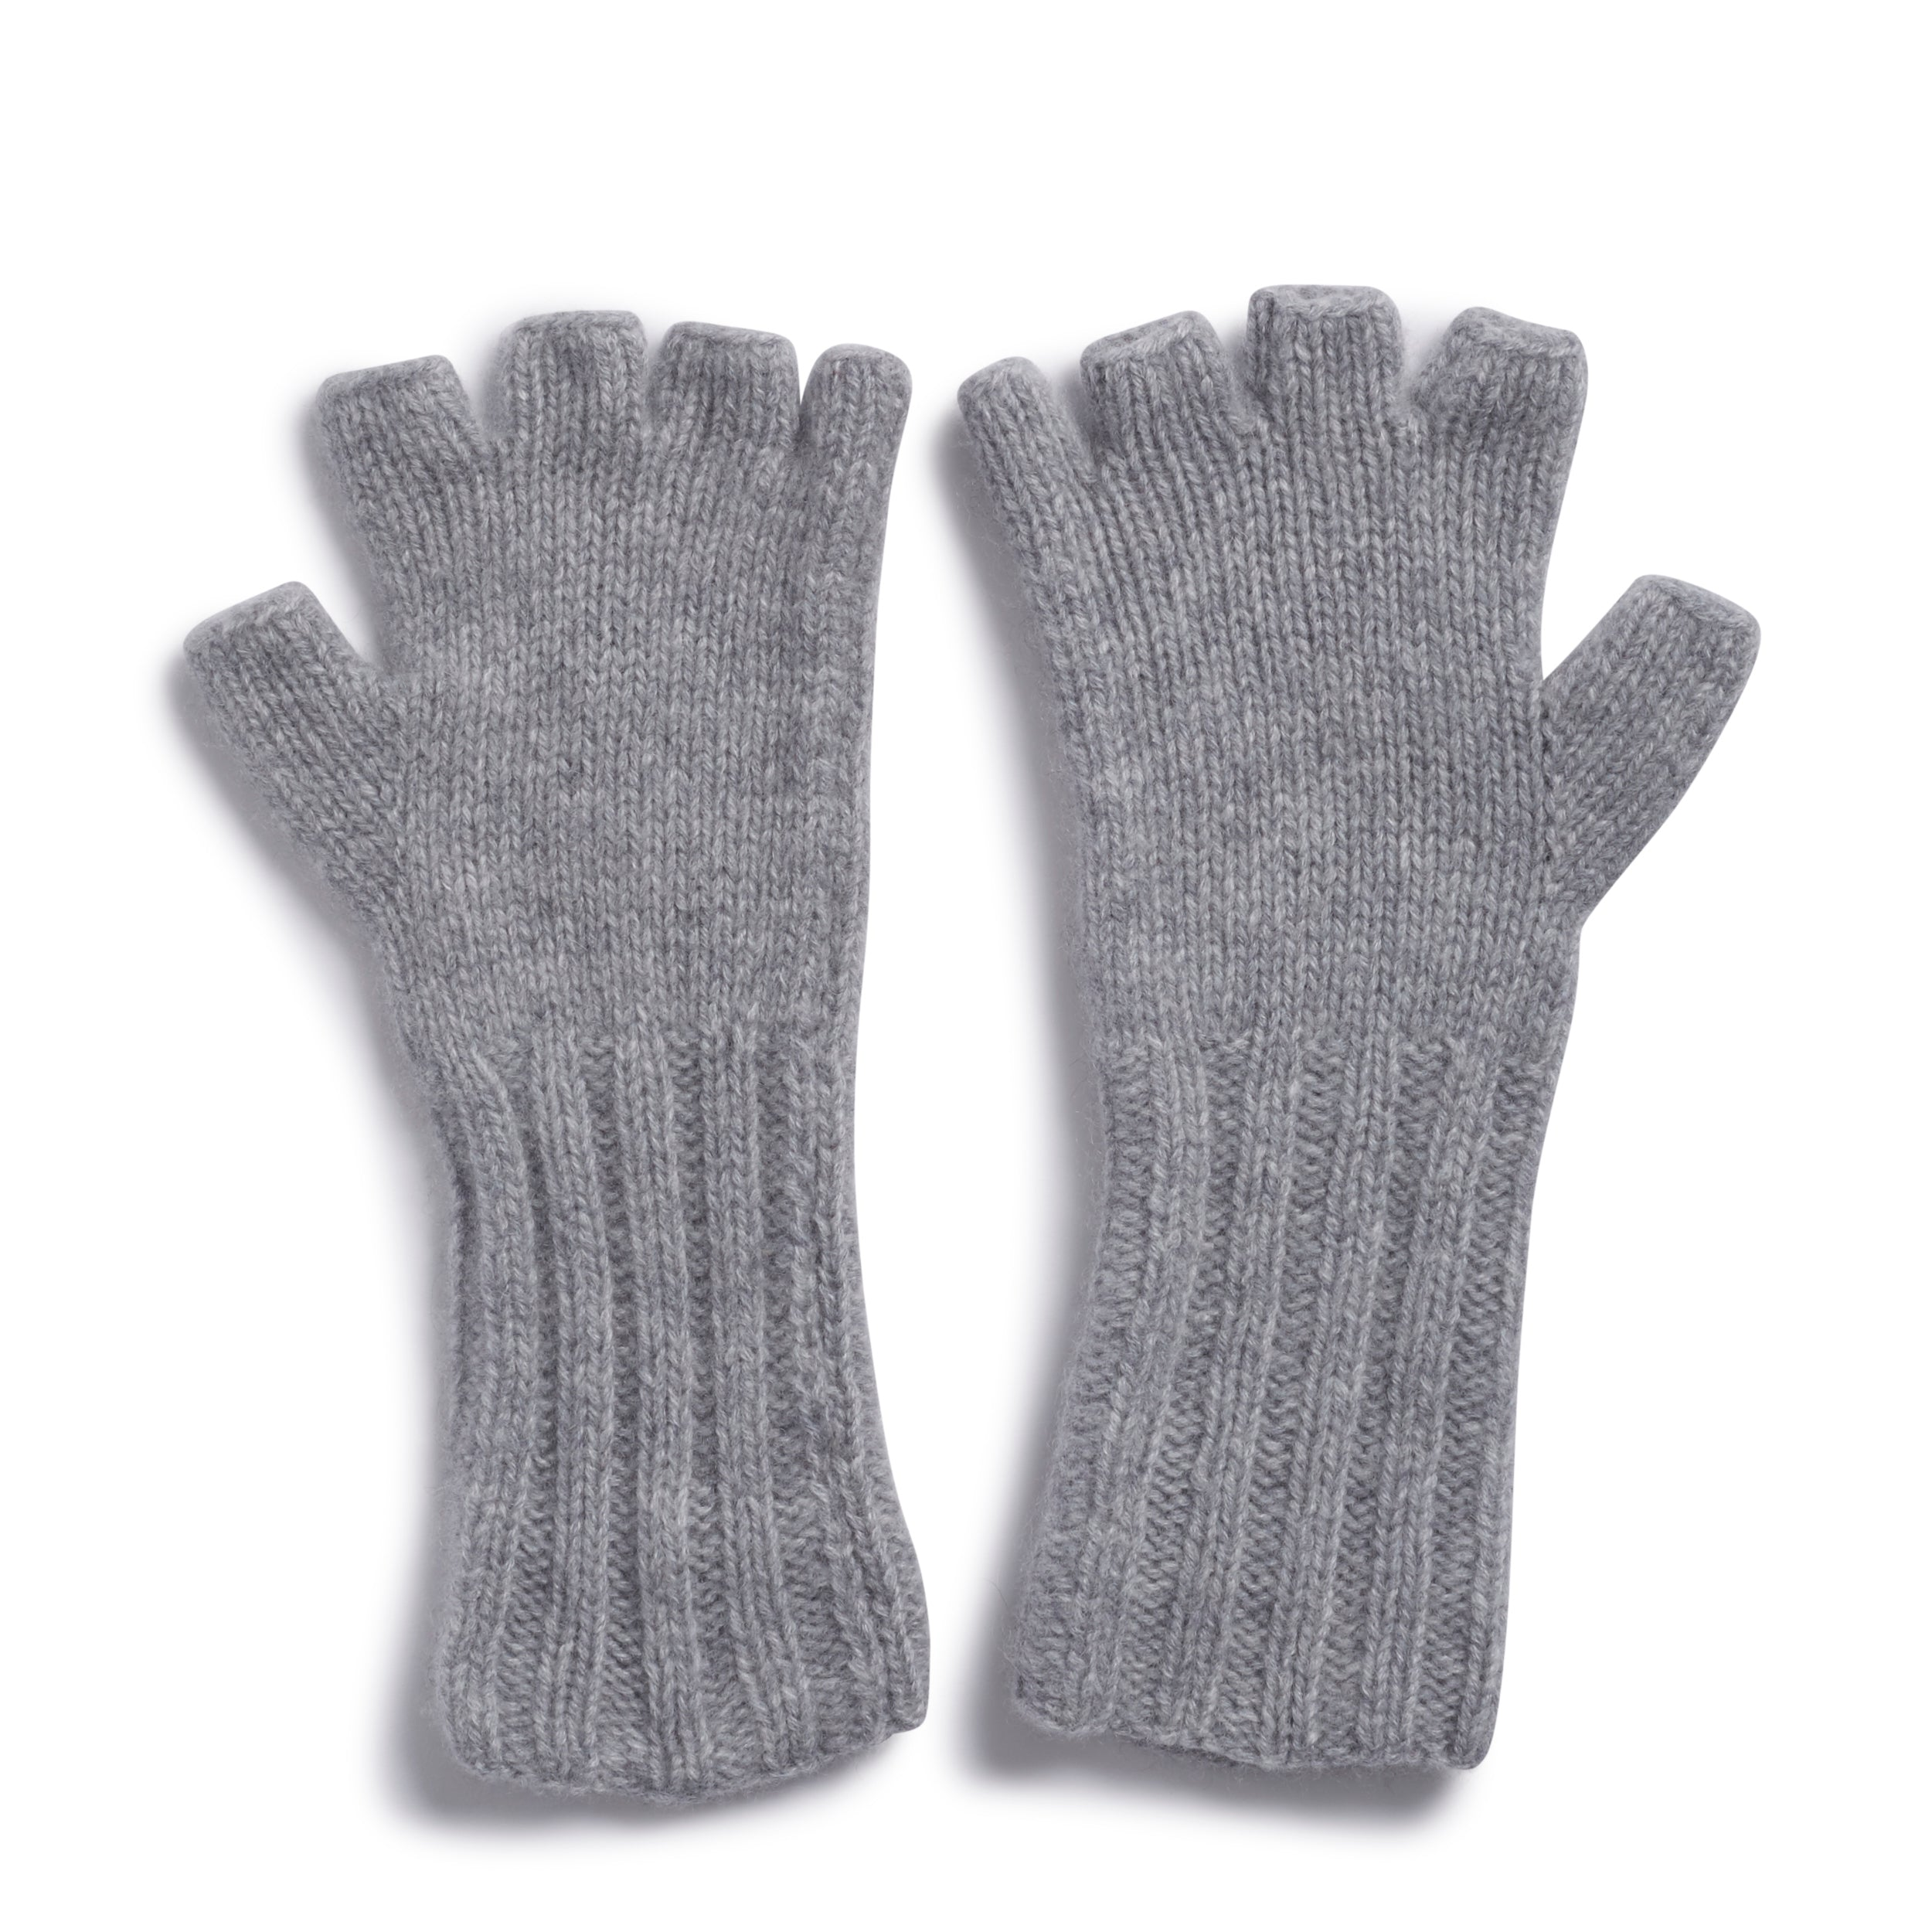 Fingerless Mittens in Silver Grey